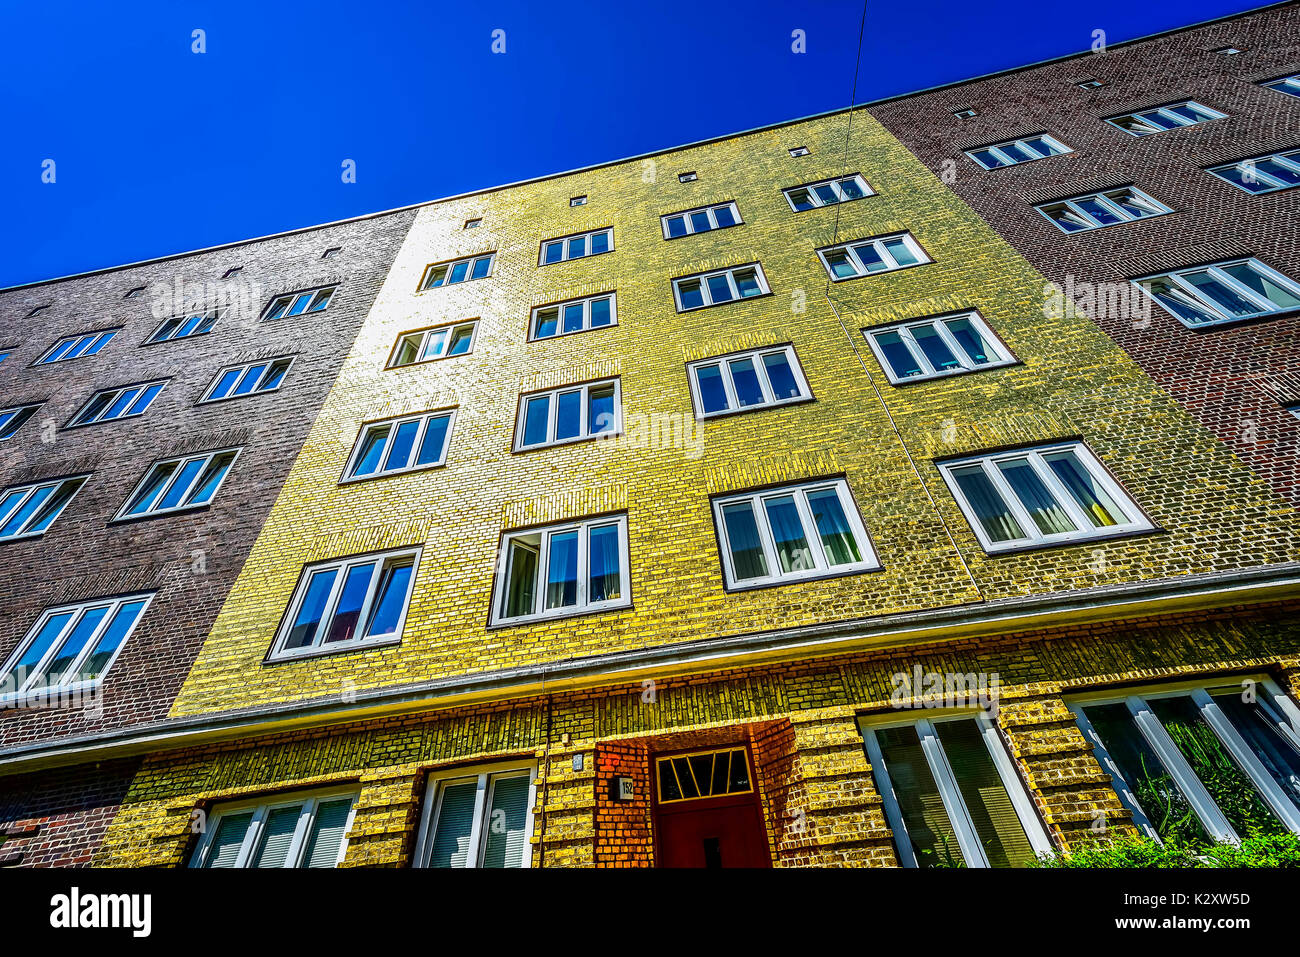 The golden house with gilt facade on the Veddel in Hamburg, piece of art of the artist Boran Burchhardt, Das Goldhaus mit vergoldeter Fassade auf der  - Stock Image